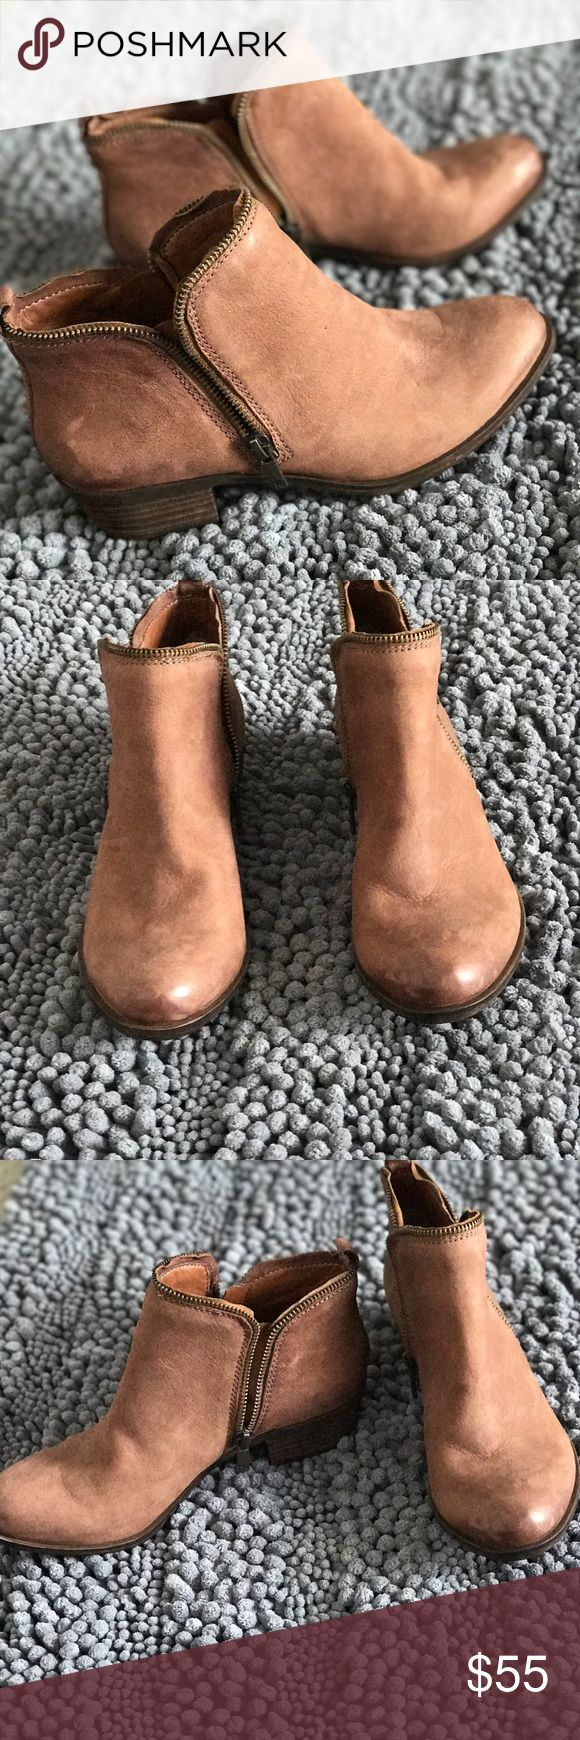 Lucky brand brown booties size 8 never worn *sale* price firm unless very close Lucky brand brown zipper booties size 8 never worn Lucky Brand Shoes Ankle Boots & Booties